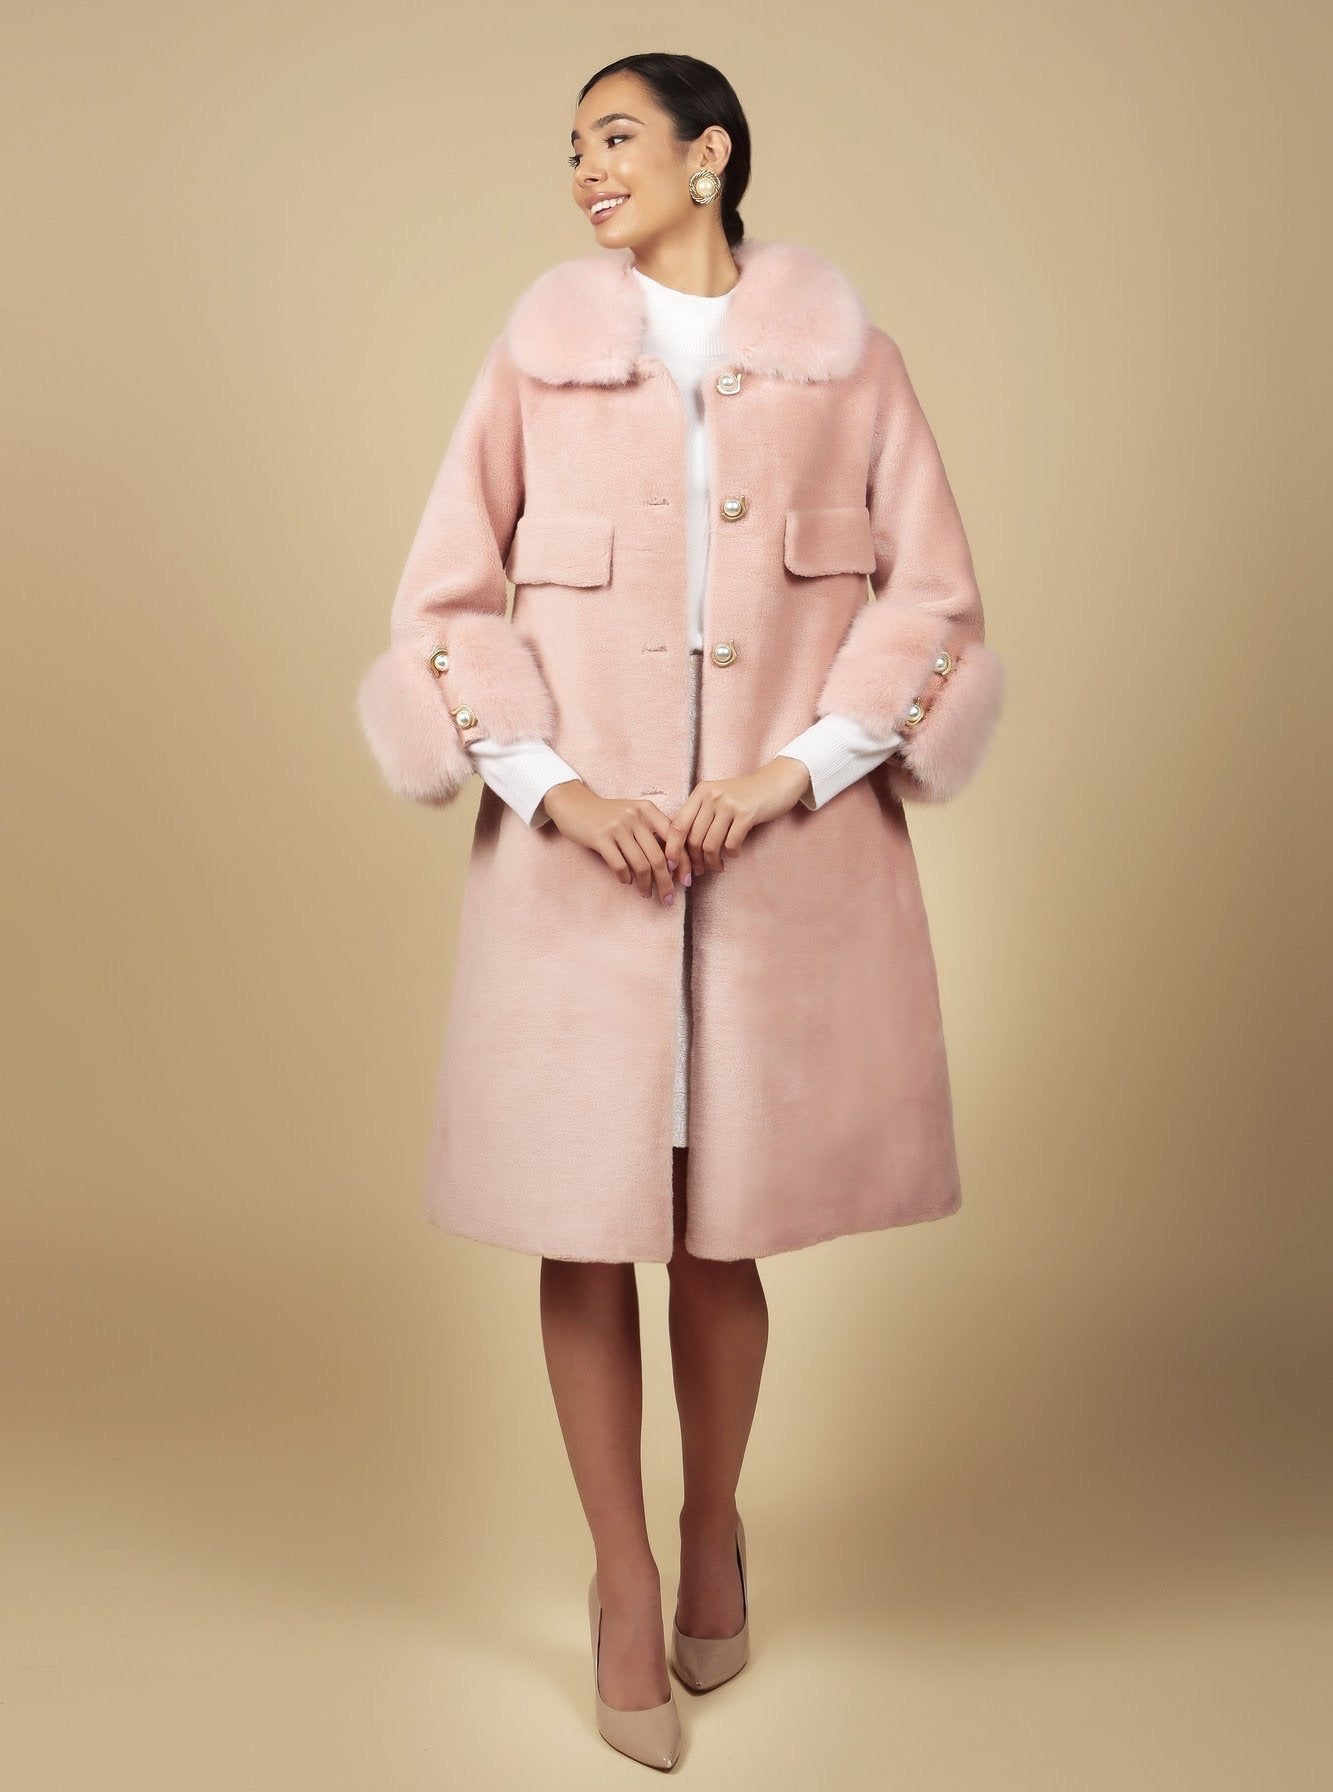 'Roman Holiday' 100% Wool Coat in Rosa